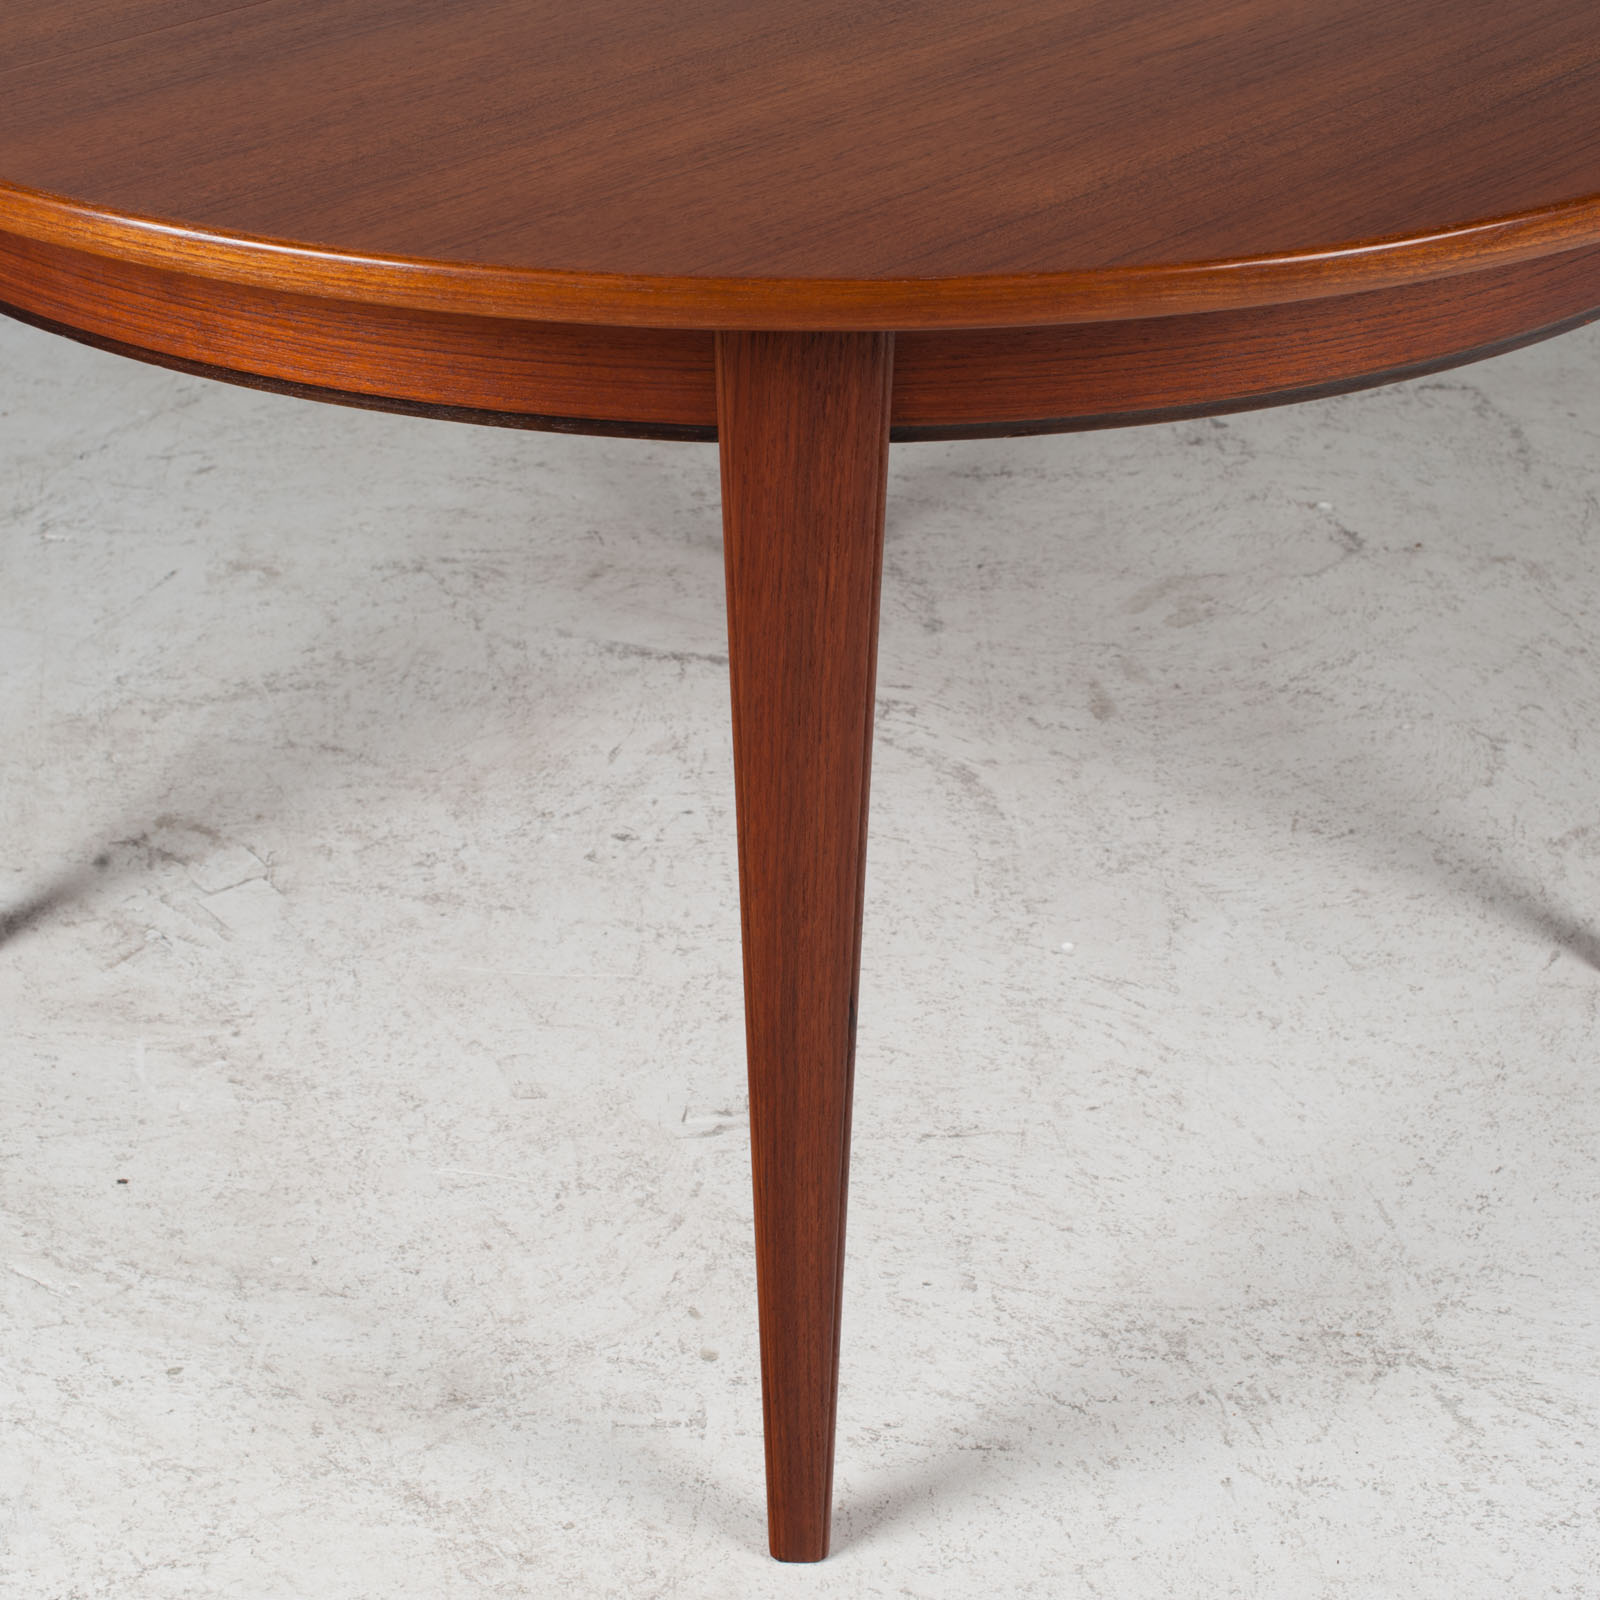 Round Dining Table By Omann Jun In Teak With Three Extensions 1960s Denmark 08